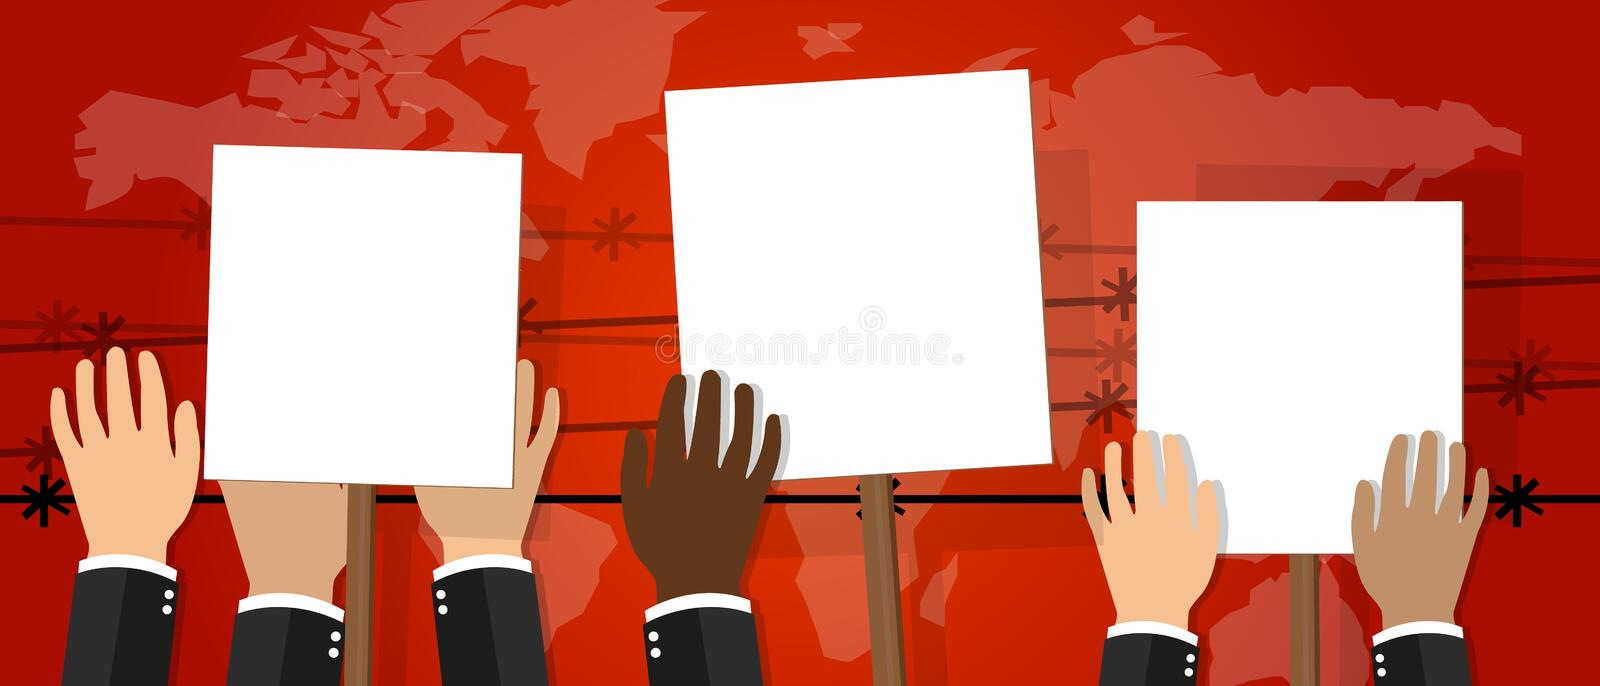 Crowd people holding protest sign white placard vector illustration of strike activism protesters anger revolt. Drawing stock illustration